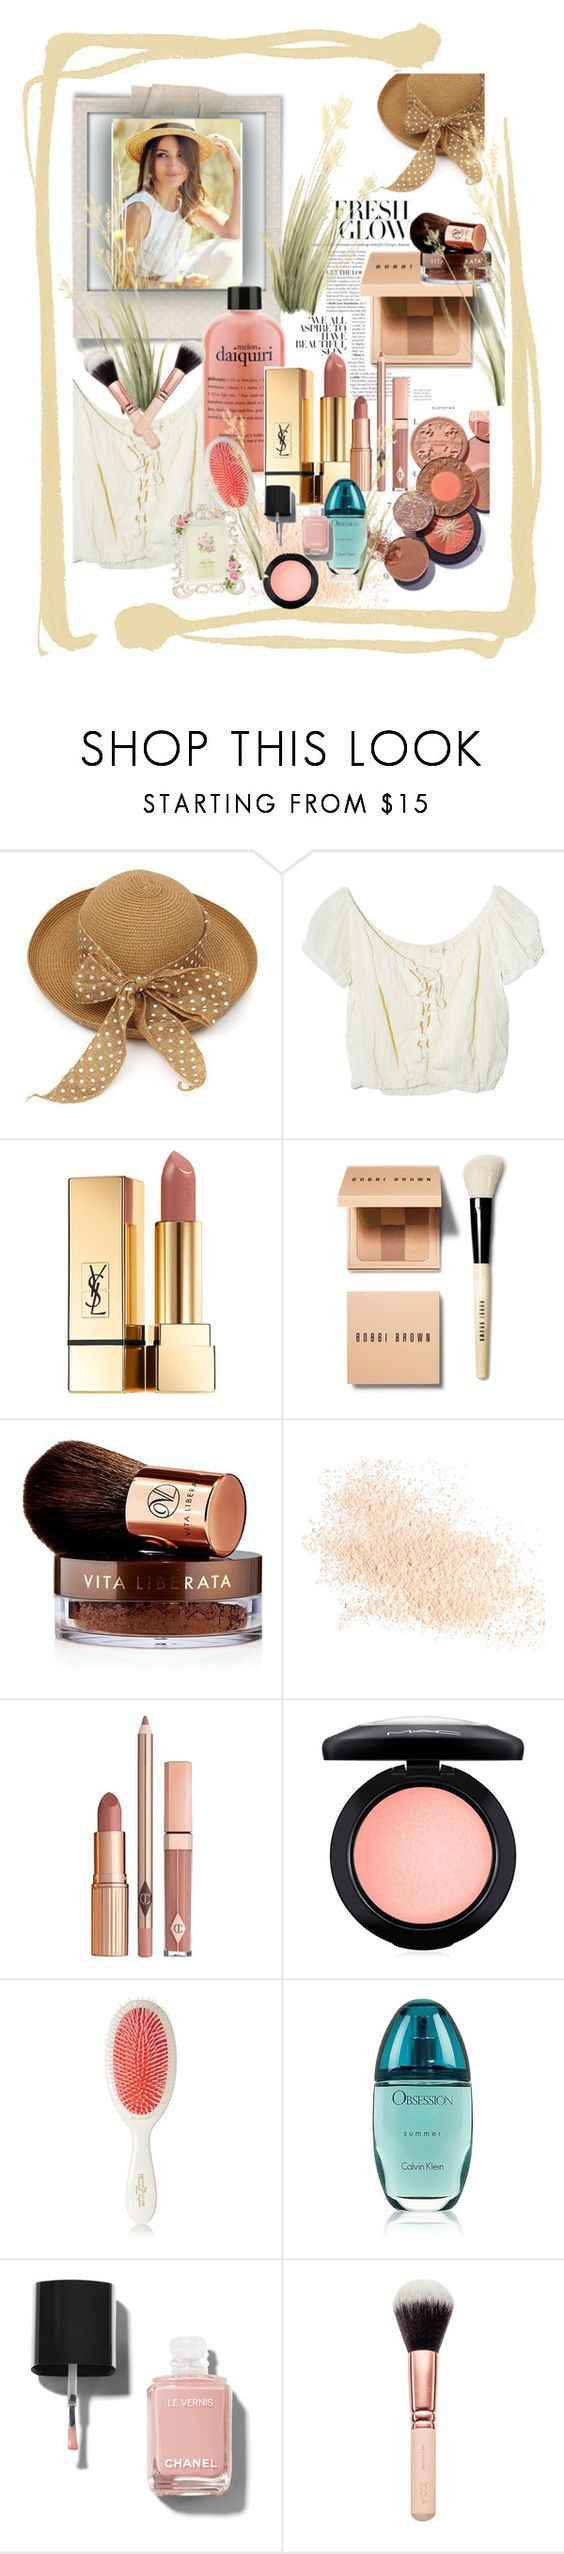 """Fresh Glow"" by onesweetthing ❤ liked on Polyvore featuring beauty, Polaroid, Jens Pirate Booty, Yves Saint Laurent, Bobbi Brown Cosmetics, Vita Liberata, Eve Lom, Dolce Vita, MAC Cosmetics and Mason Pearson"